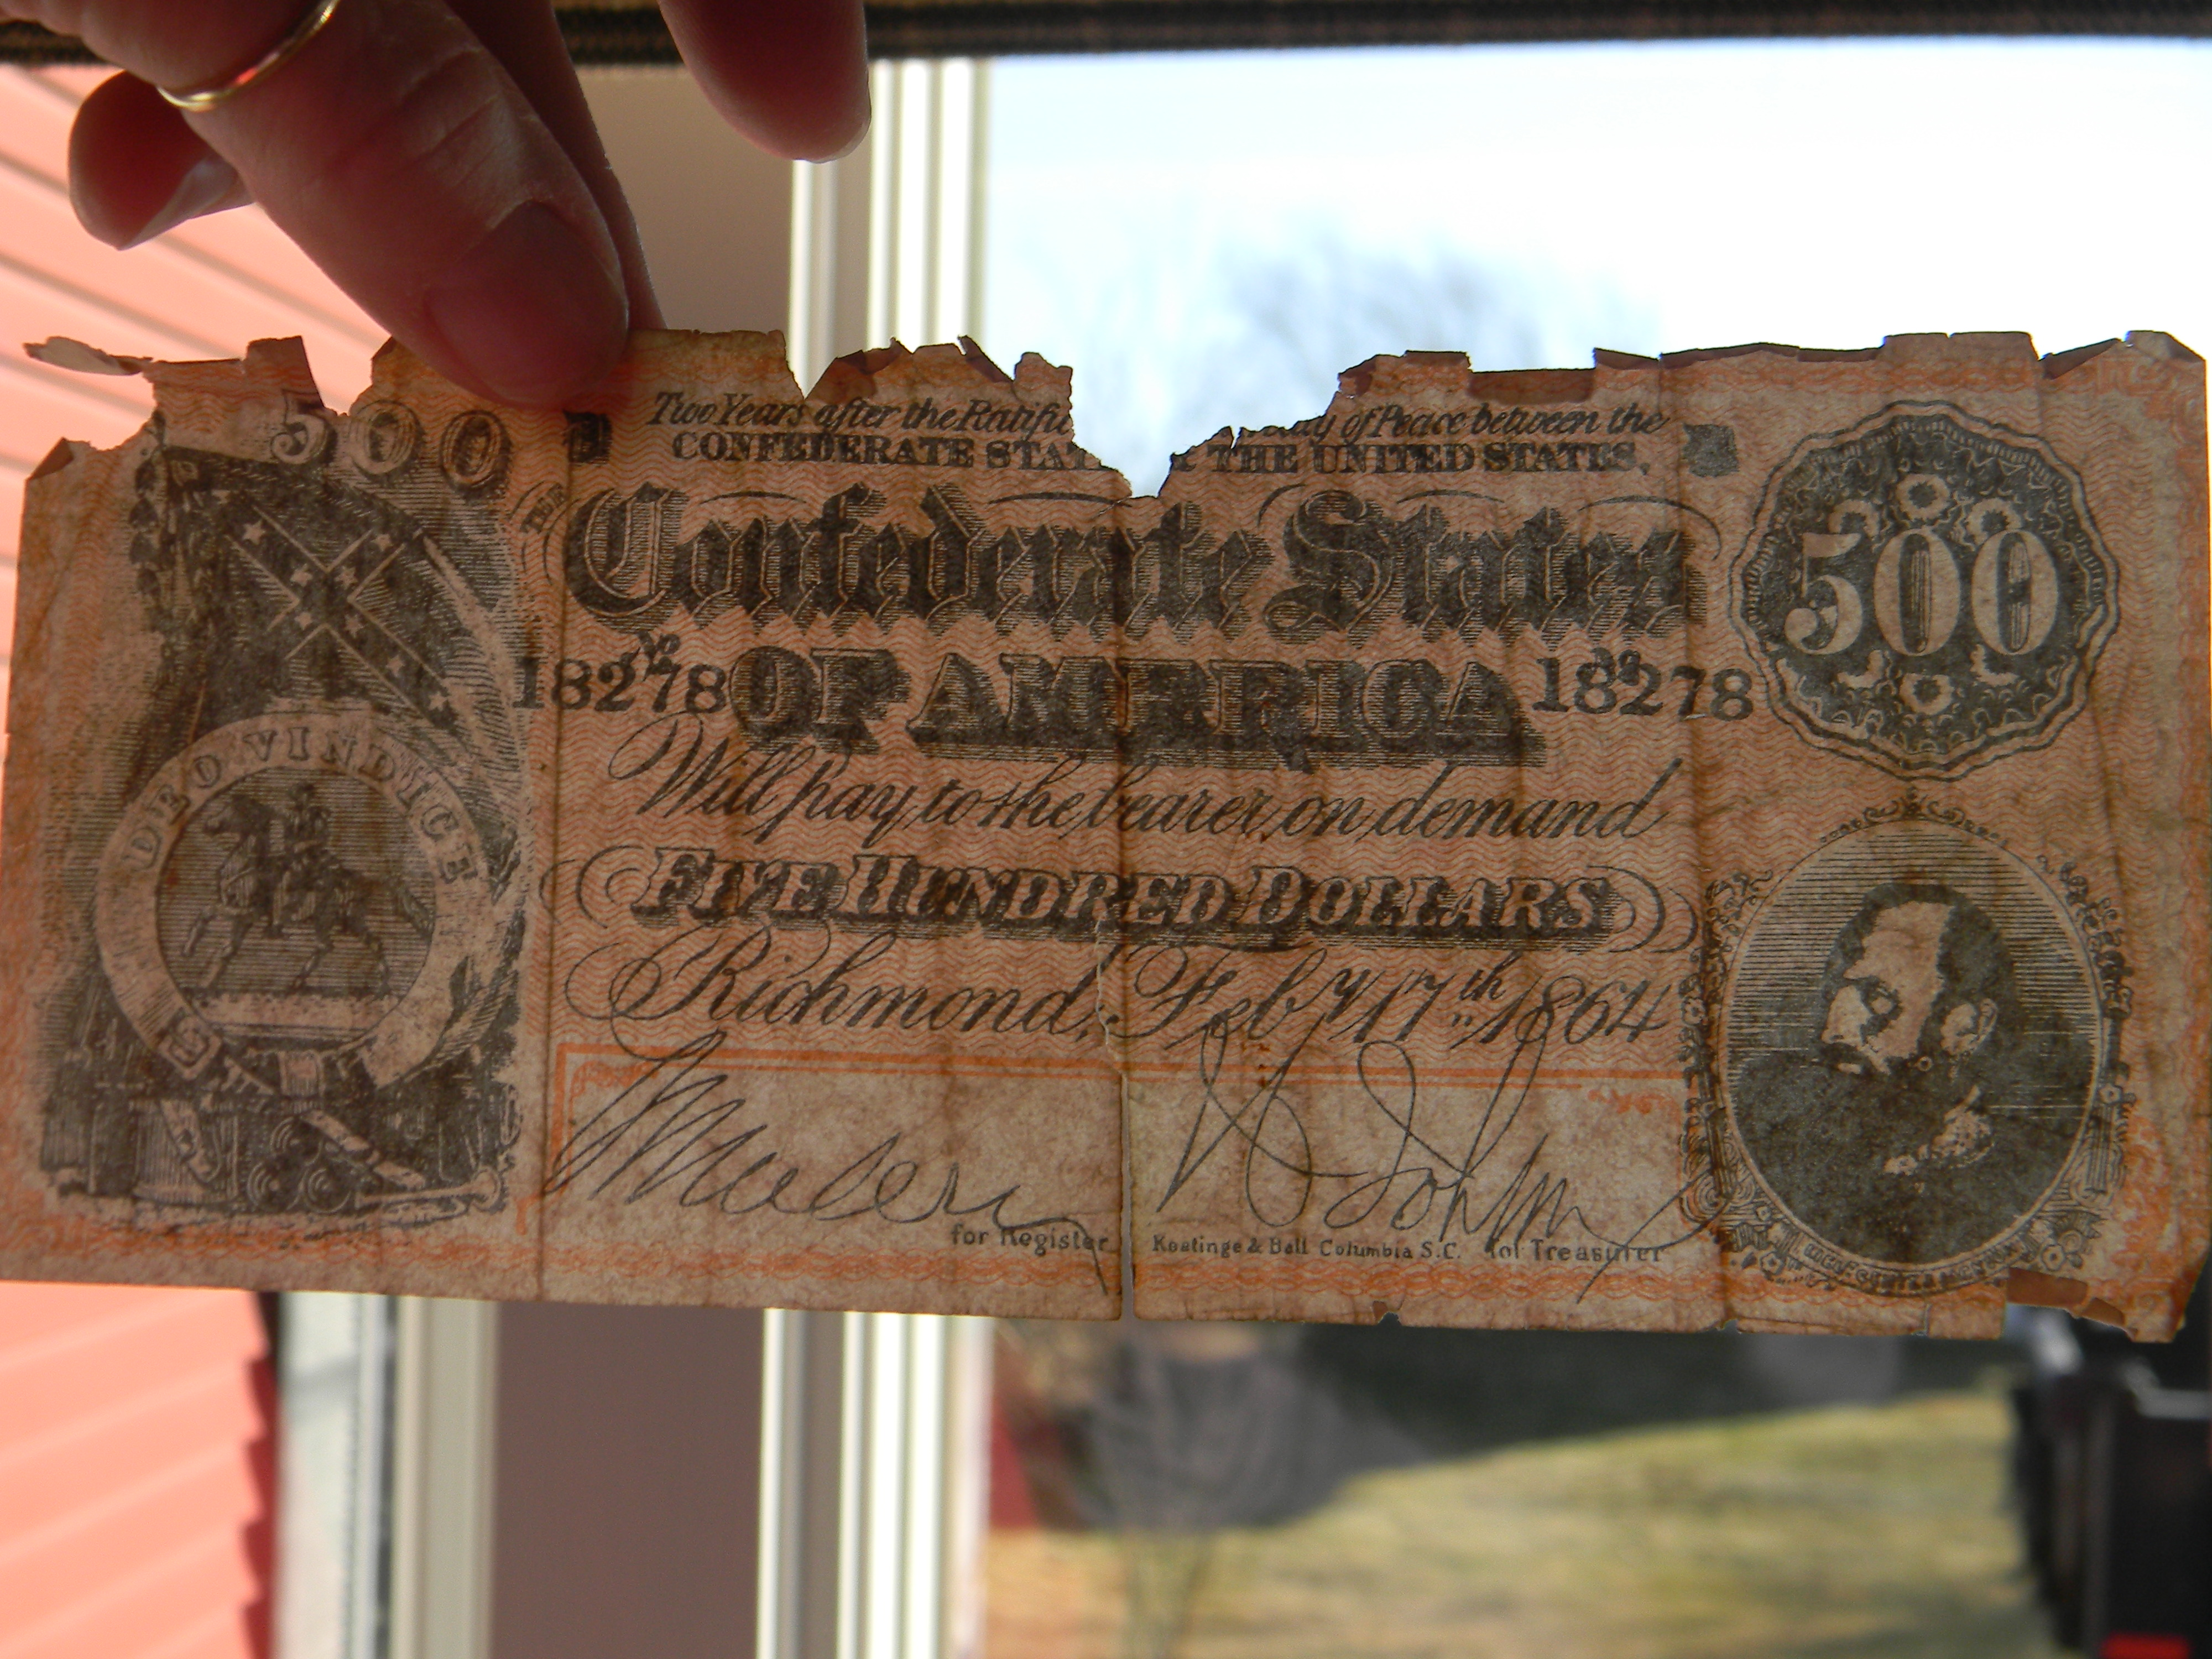 1864 2 years after Ratification $5 bill and a $500